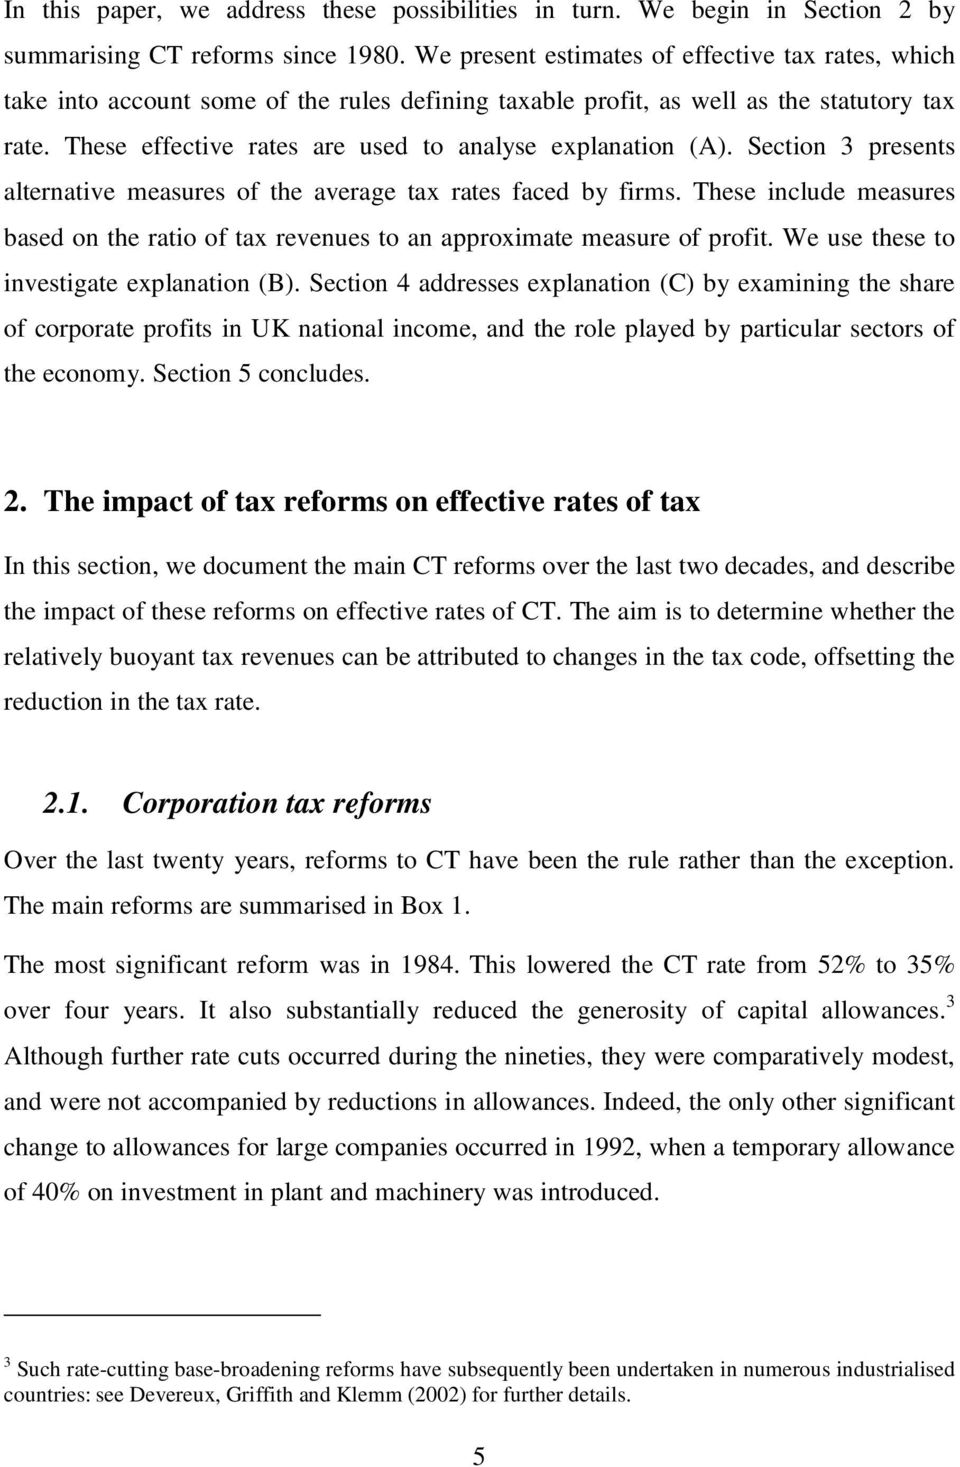 These effective rates are used to analyse explanation (A). Section 3 presents alternative measures of the average tax rates faced by firms.